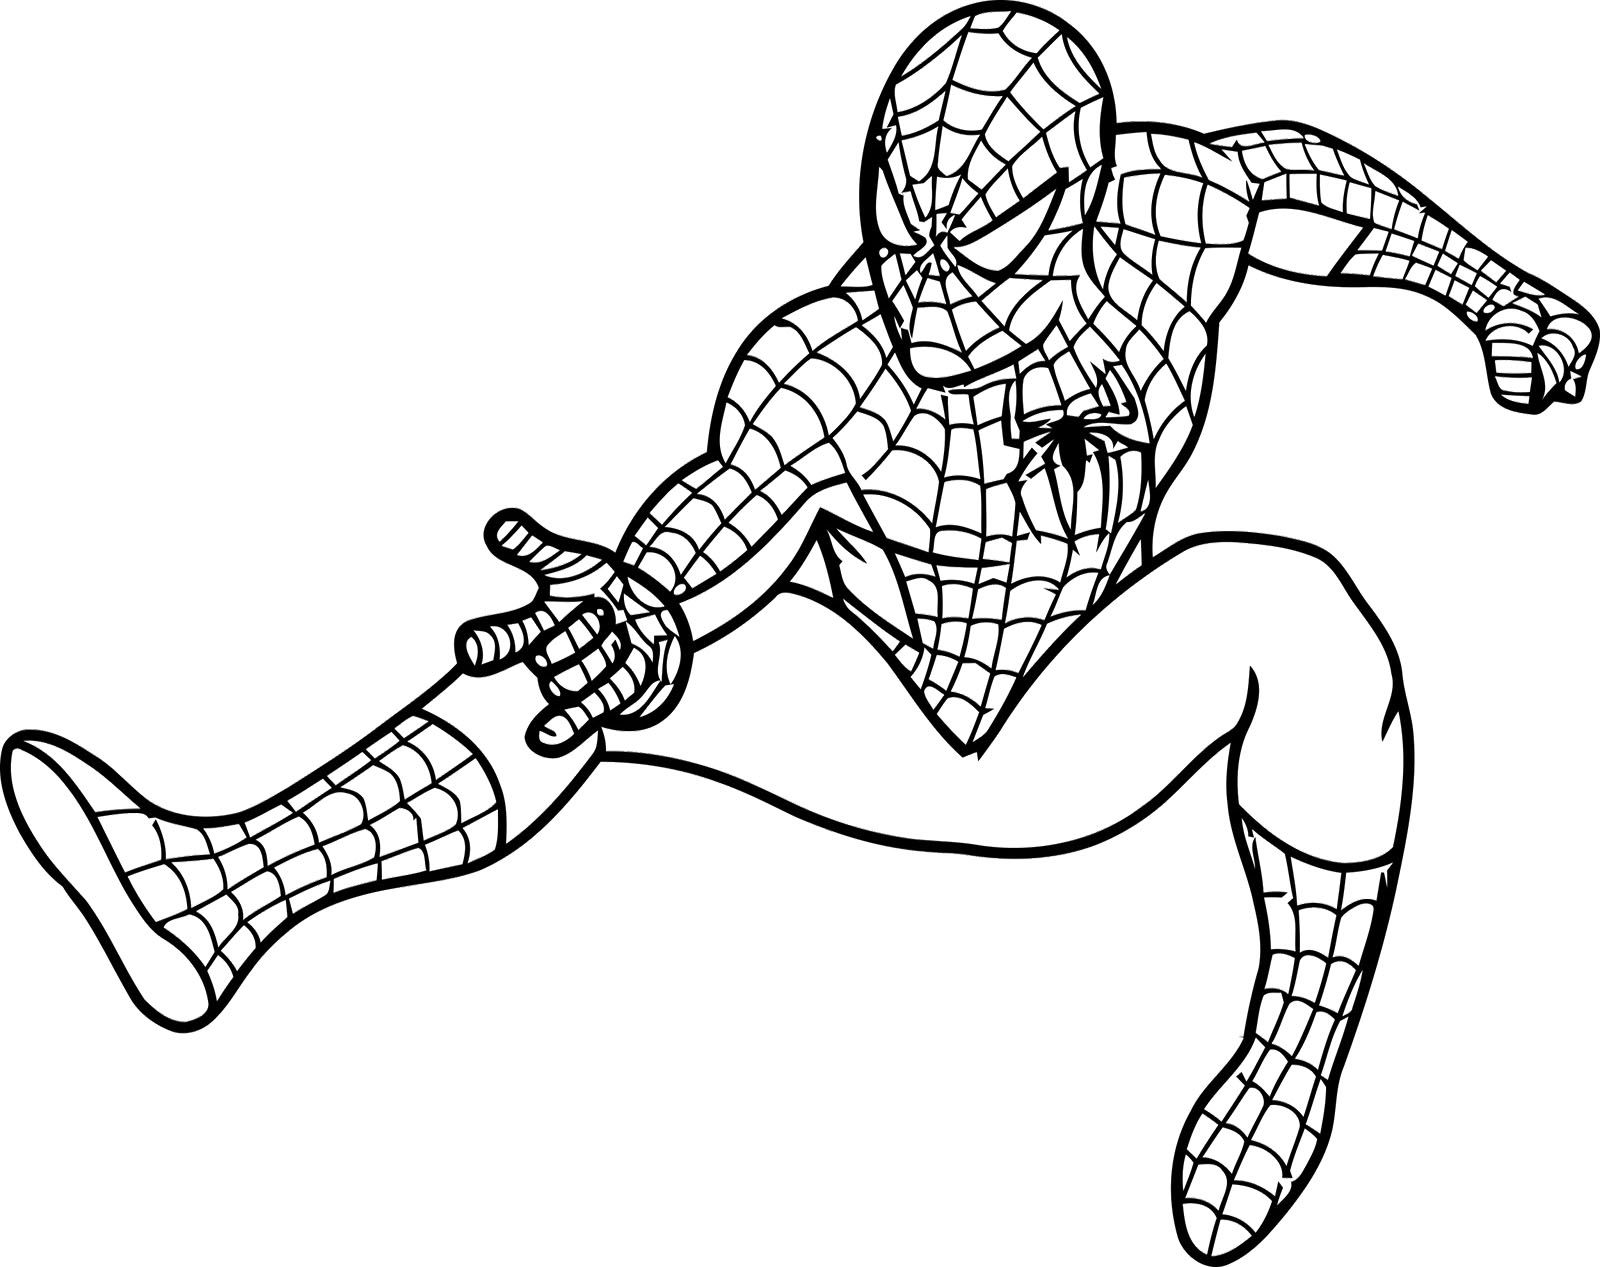 8396 Ide Coloring Pages Spiderman 19 Best Coloring Pages Download Turtle Coloring Pages Superhero Coloring Pages Lego Coloring Pages